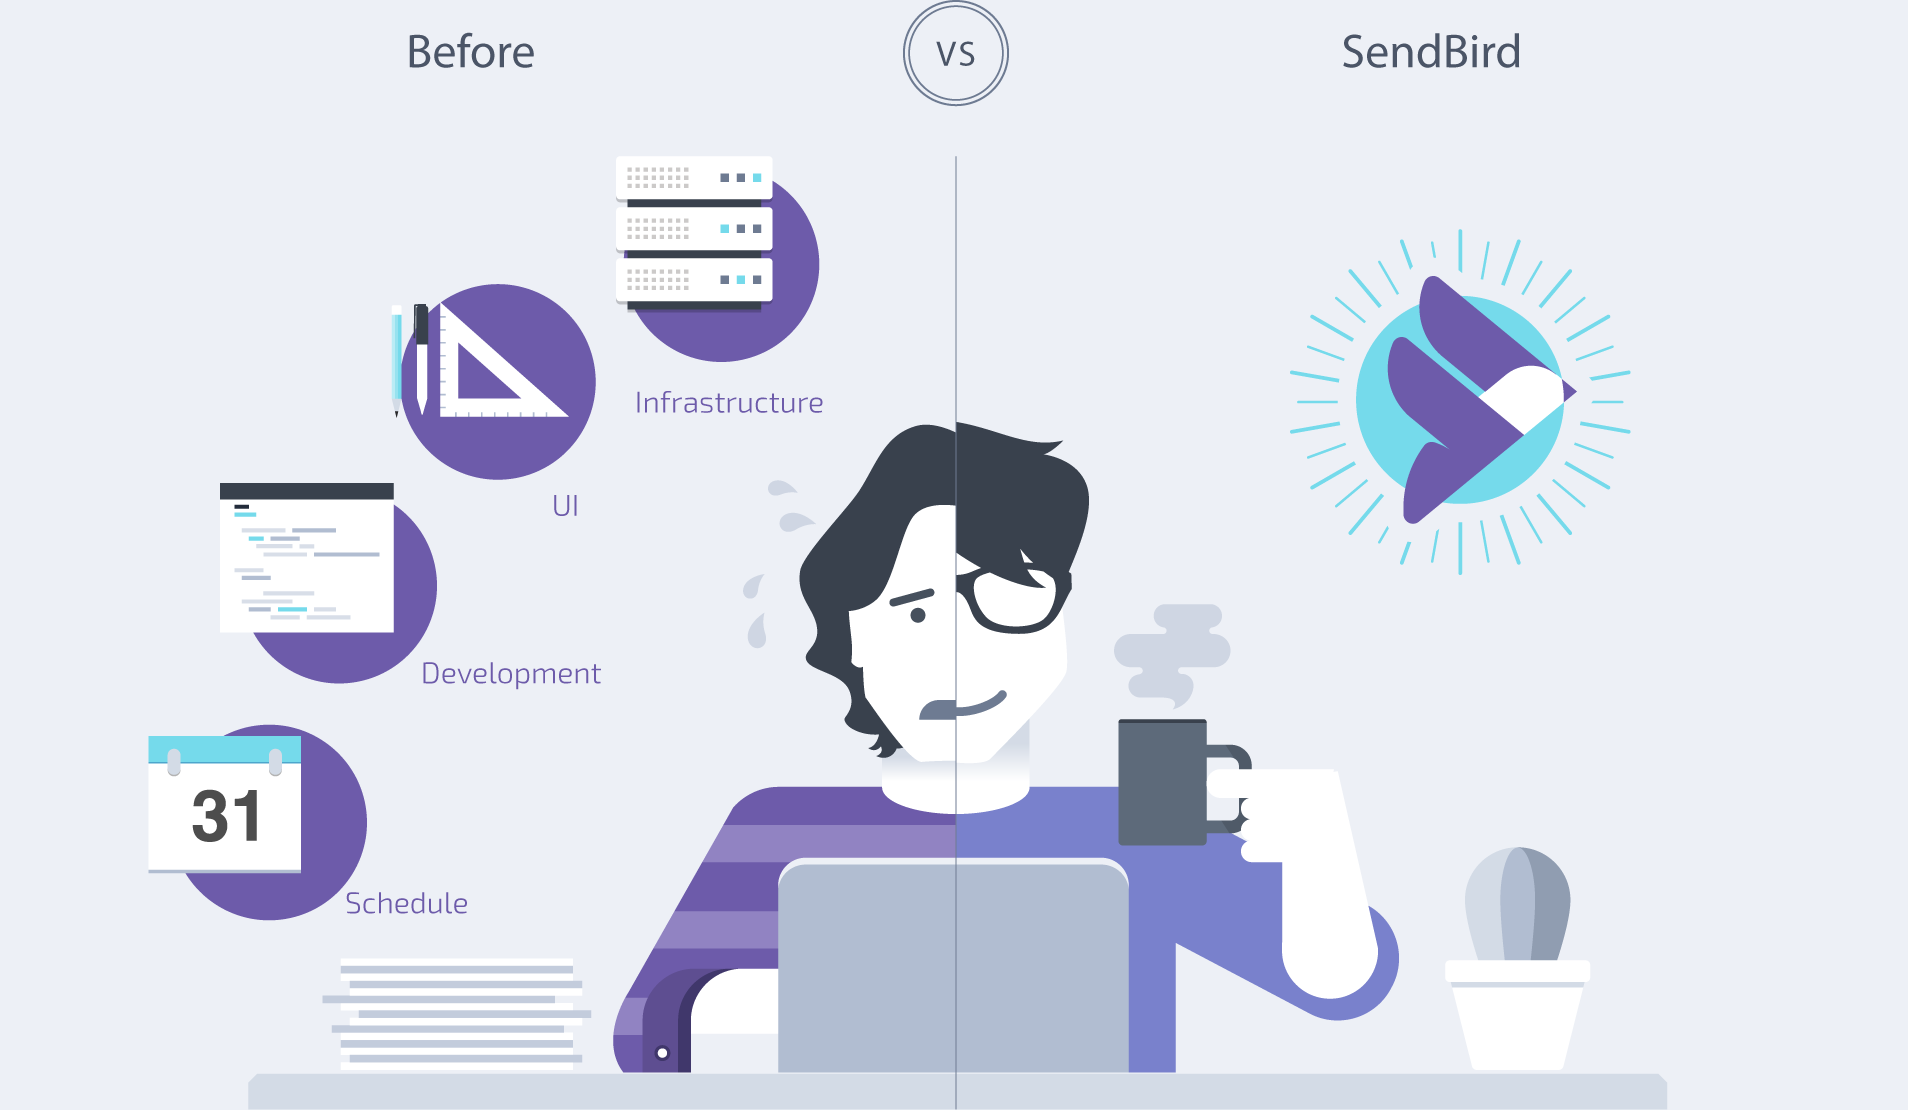 Comes with the infrastructure, UI, ease-of-development will enable rapid release schedule -- SendBird will do the heavy-lifting for you.